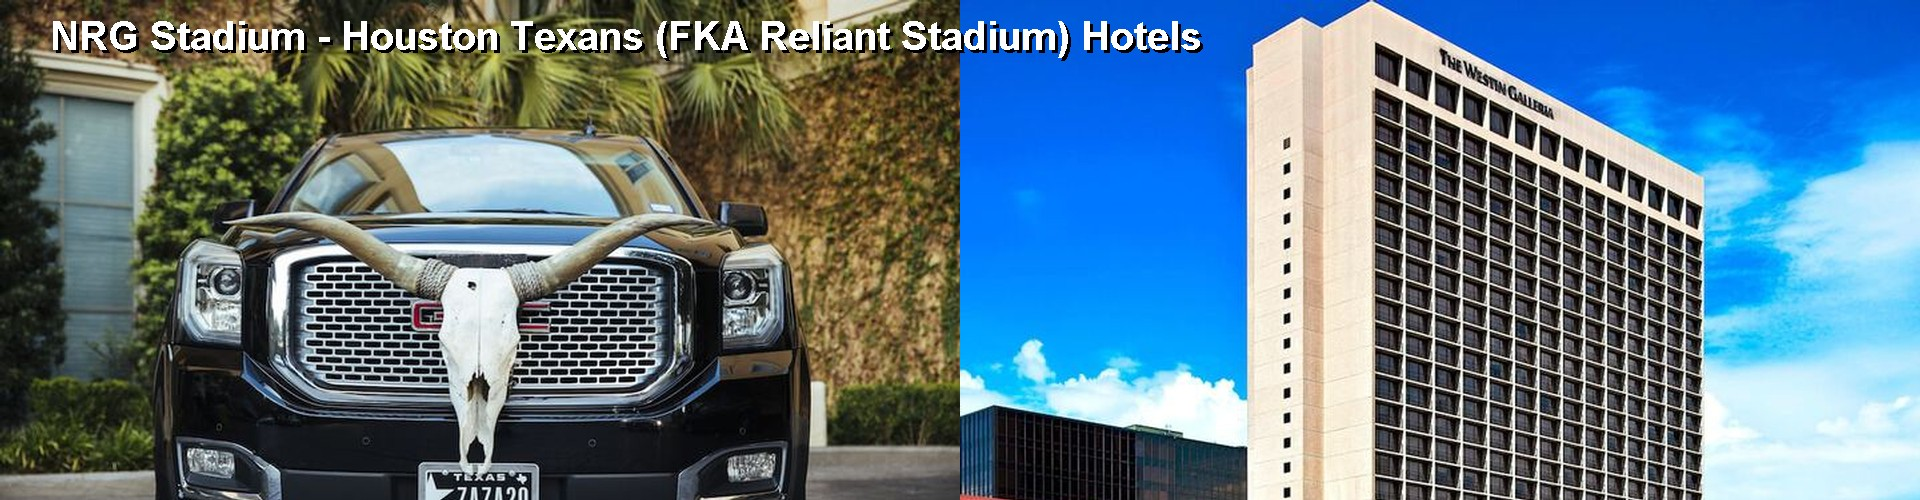 $30+ Hotels Near NRG Stadium Houston Texans (FKA Reliant Stadium) TX